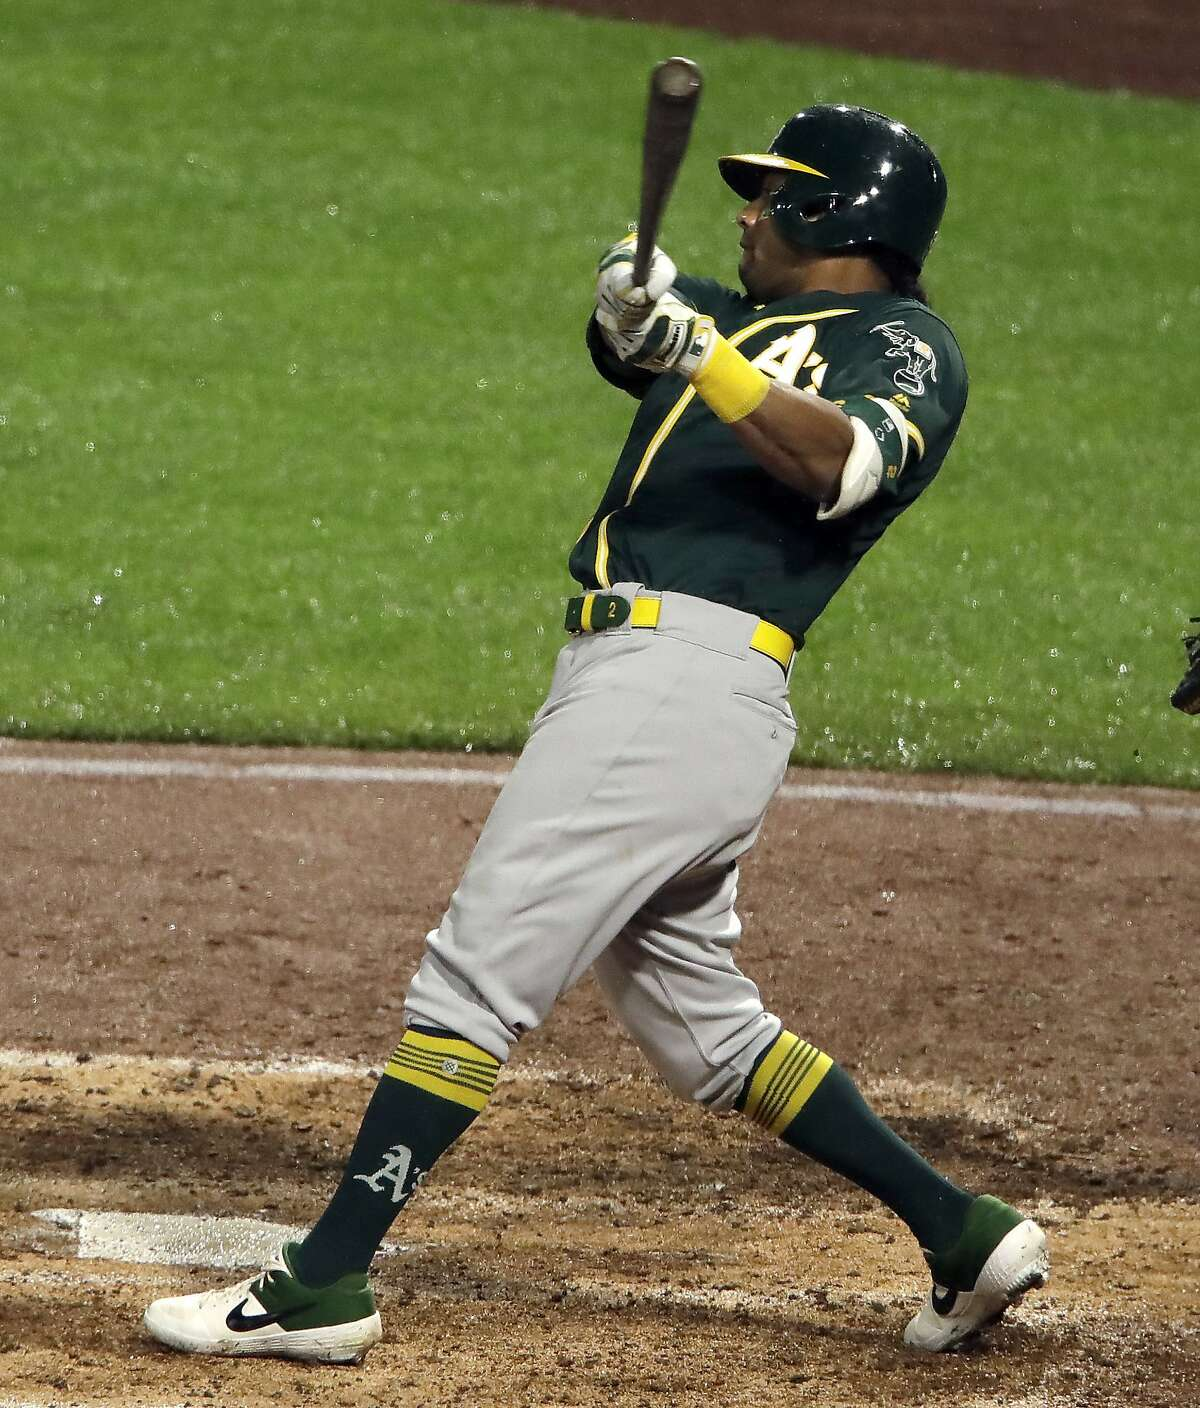 Oakland Athletics' Khris Davis drives in a run with a single off Pittsburgh Pirates starting pitcher Trevor Williams during the fifth inning of a baseball game in Pittsburgh, Saturday, May 4, 2019. (AP Photo/Gene J. Puskar)